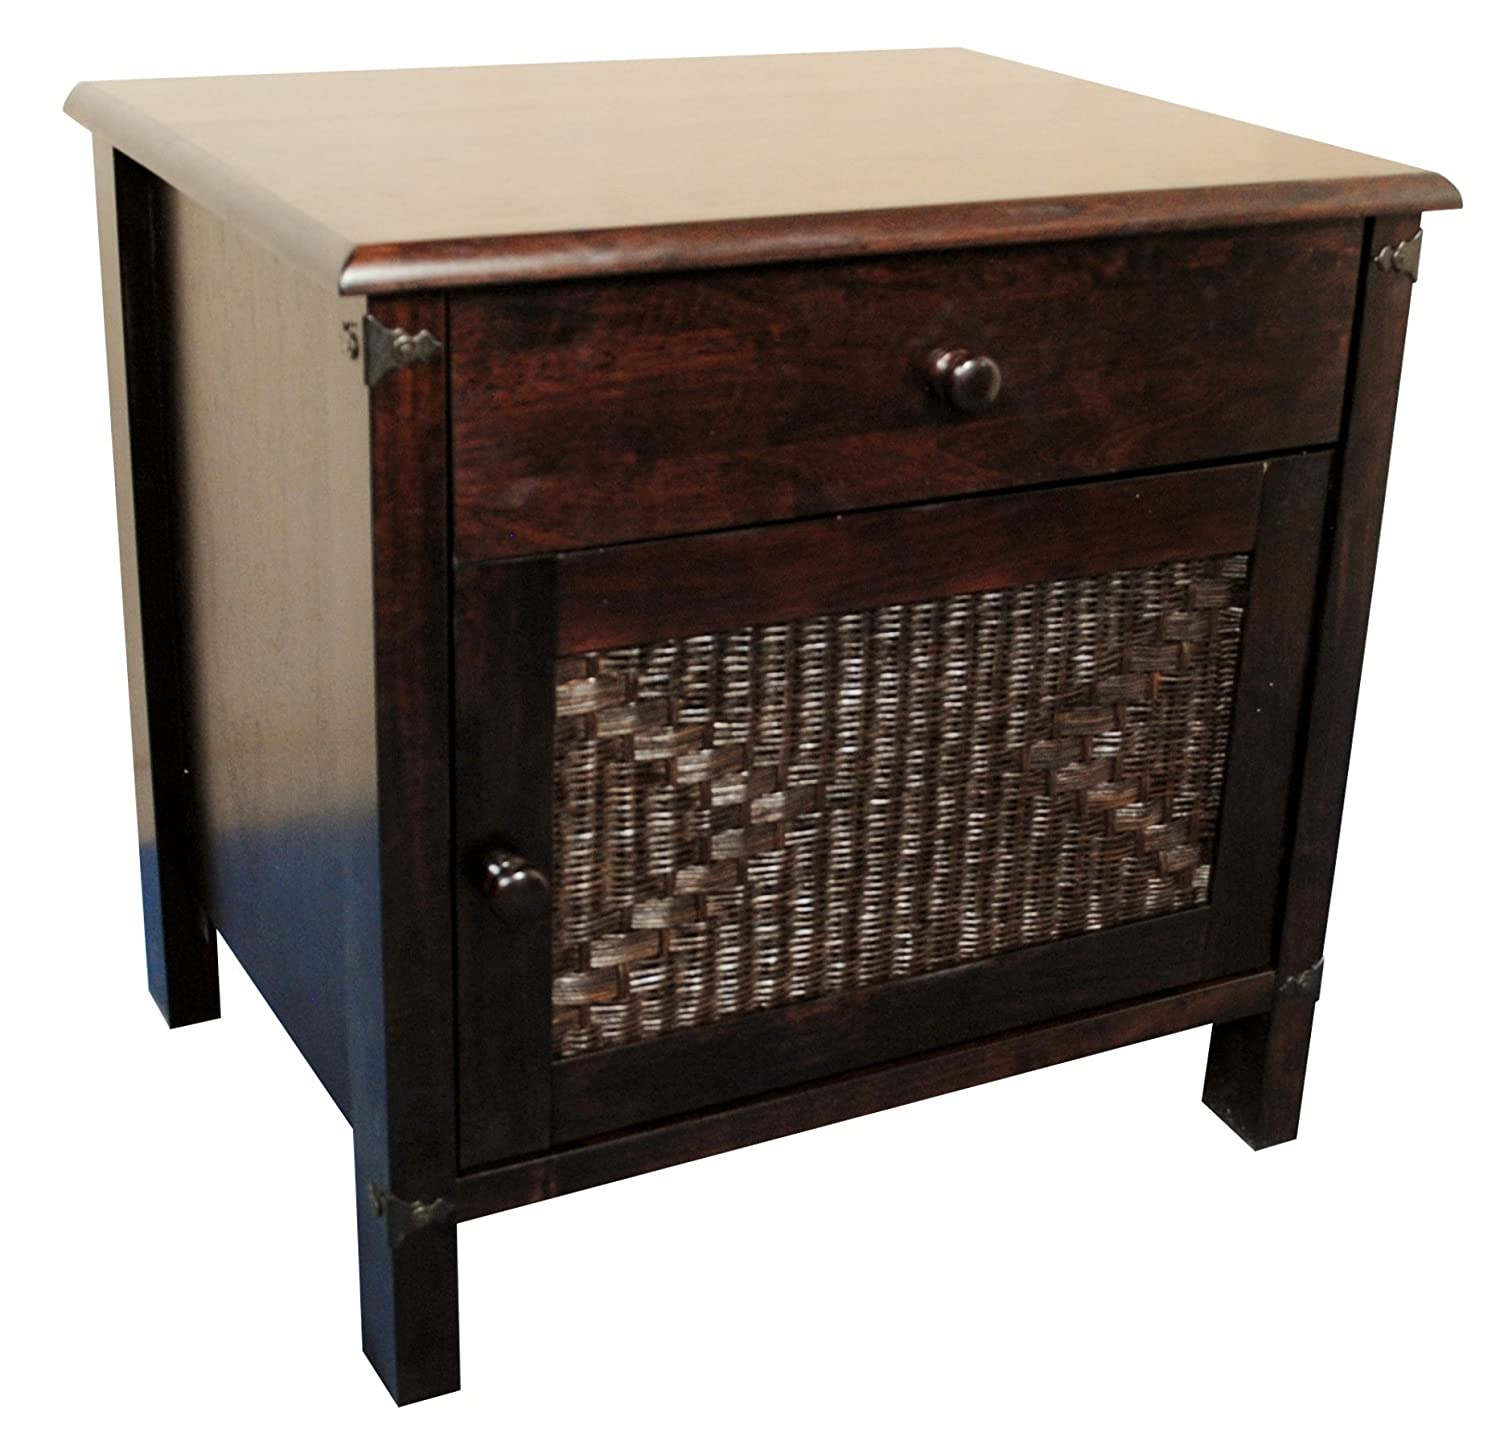 Ideal Morocco Solid Wood Bedside Cabinet   Dark Walnut U0026 Wicker:  Amazon.co.uk: Kitchen U0026 Home